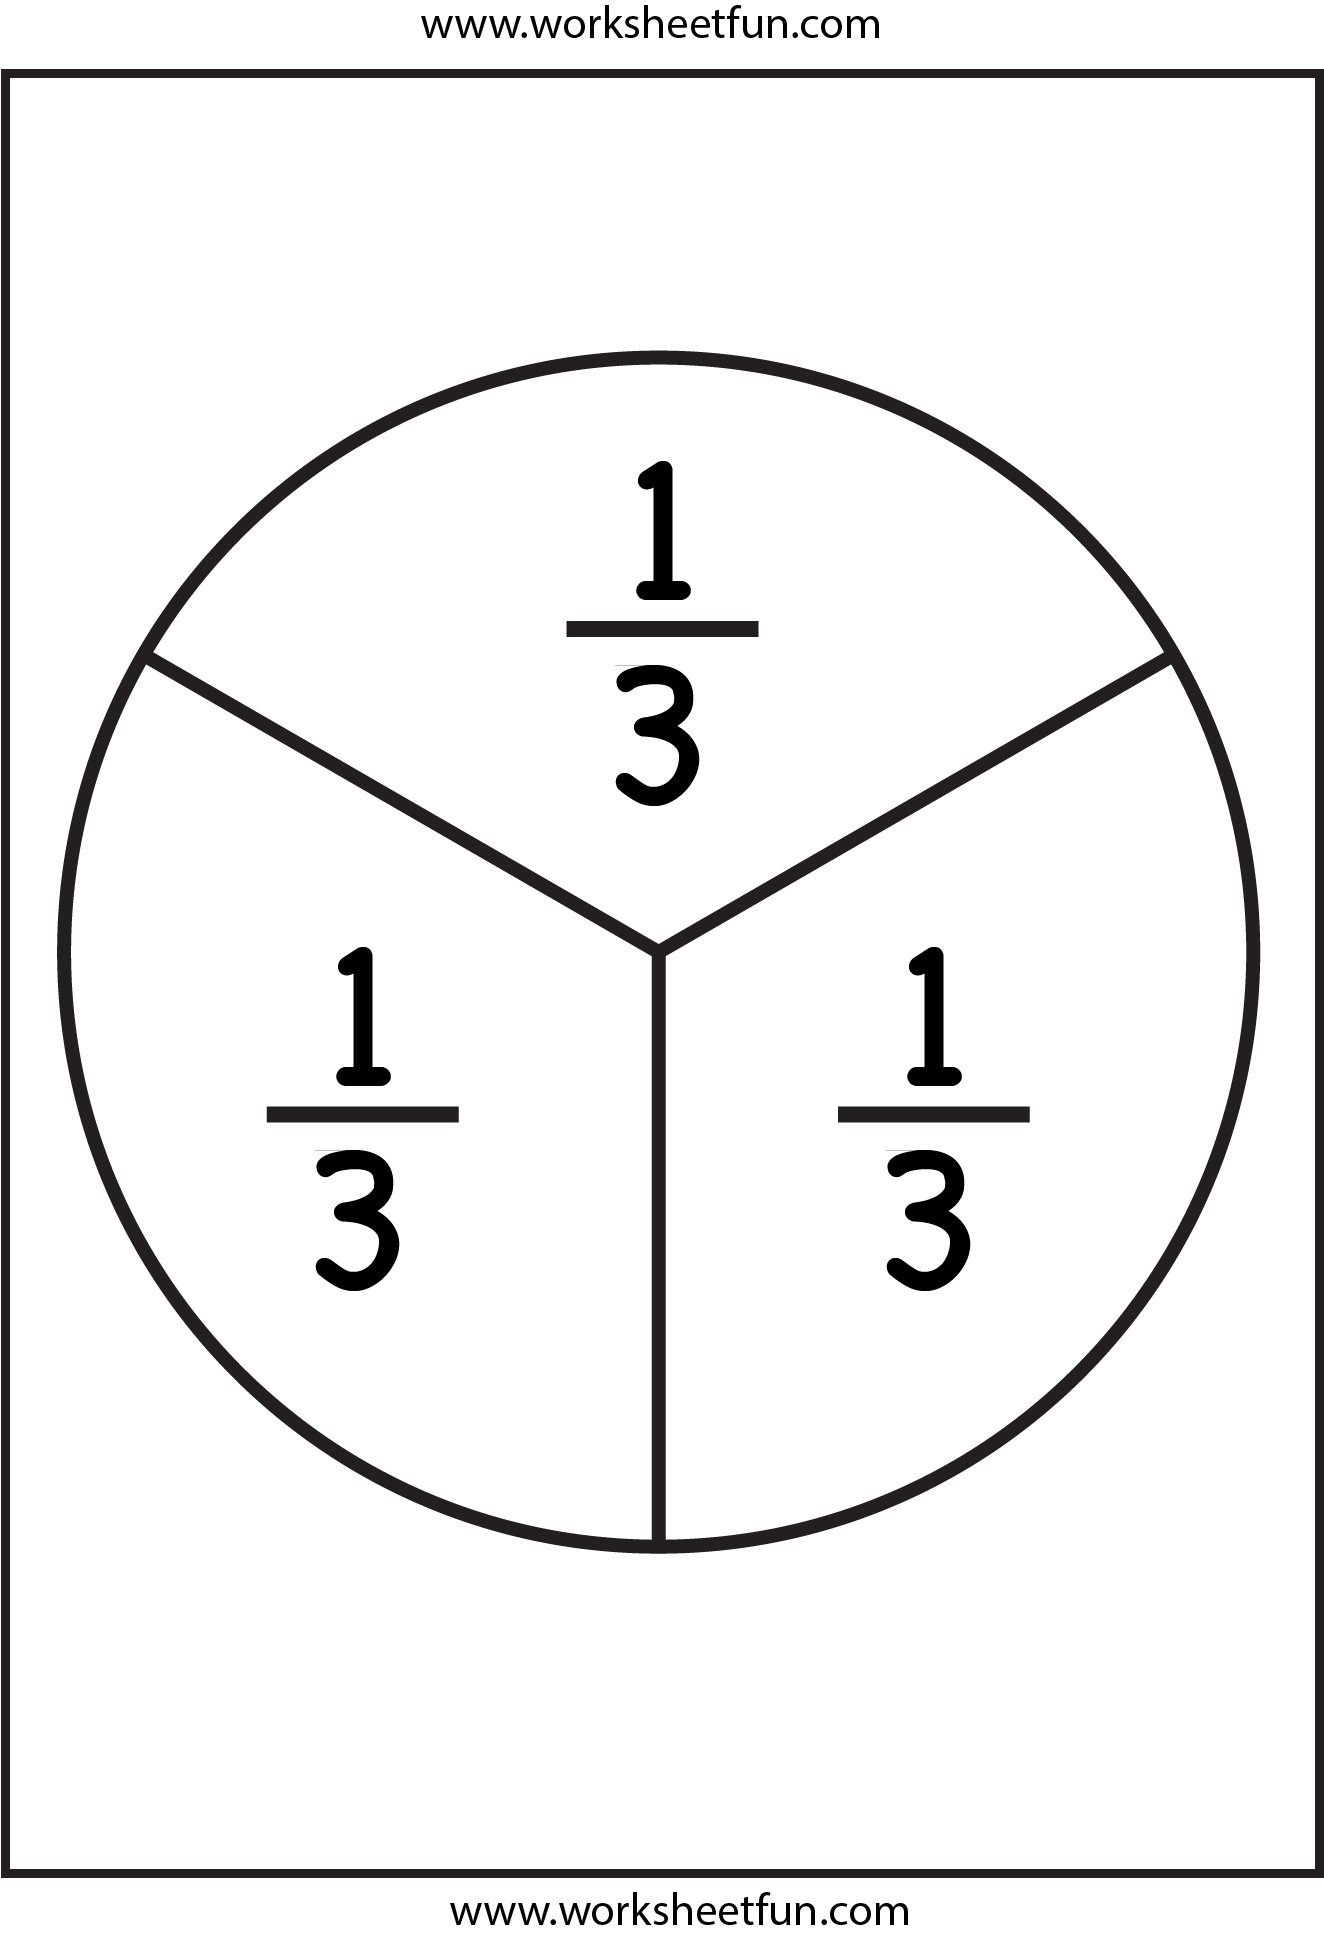 Fraction Circles 11 Worksheets 1 2 1 3 1 4 1 5 1 6 1 7 1 8 1 9 1 10 1 11 1 12 Halves Thirds Forths Fifths Sixths S Fractions Fraction Circles Worksheetfun